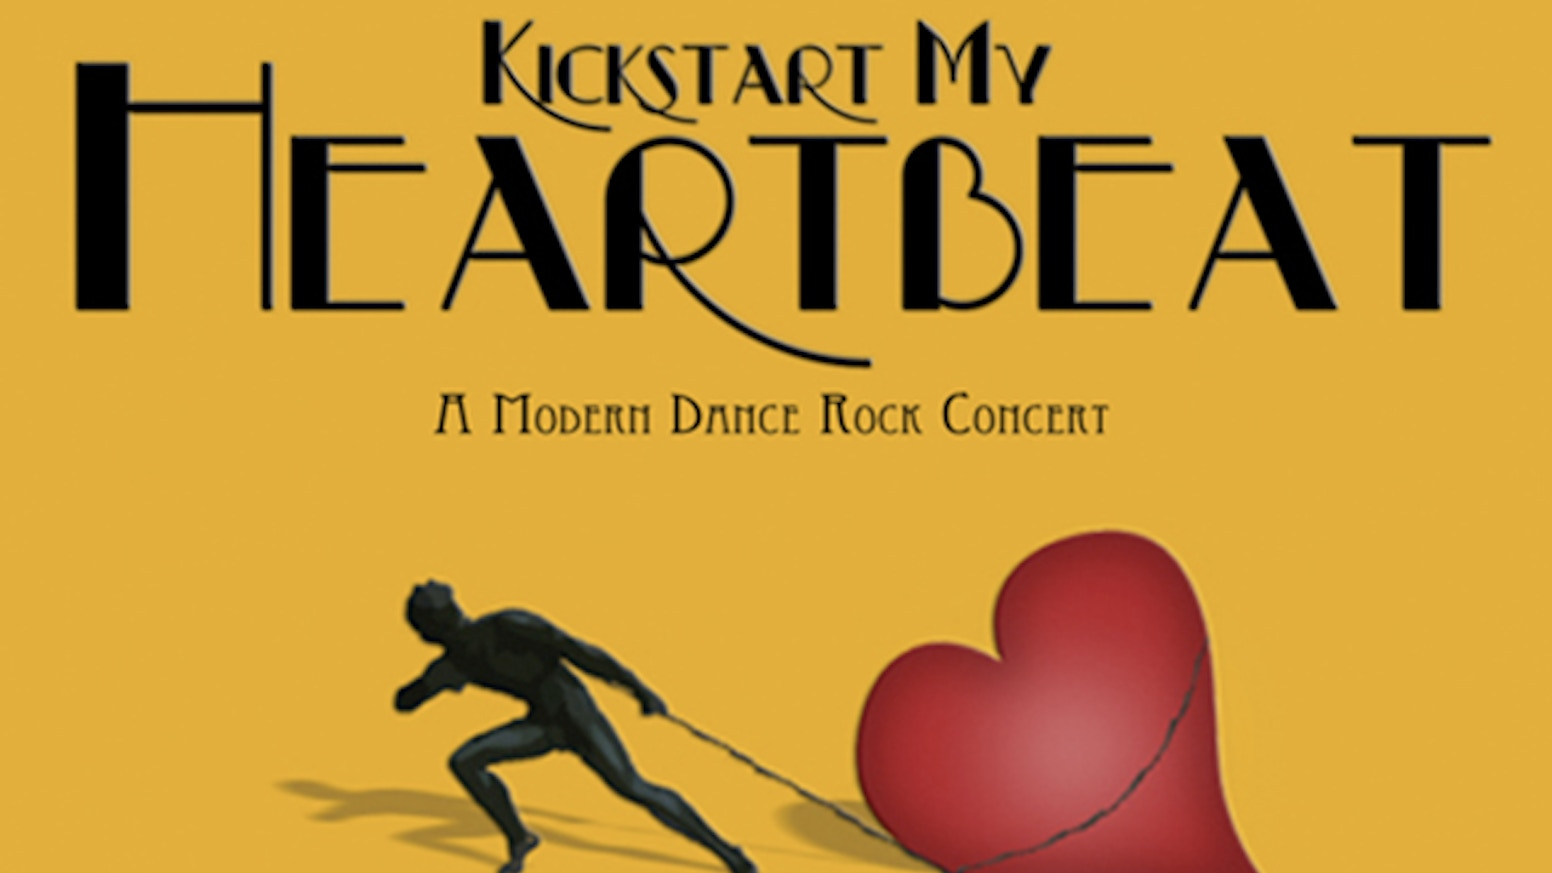 Heartbeat - Modern Dance Rock Concert by George Woods — Kickstarter